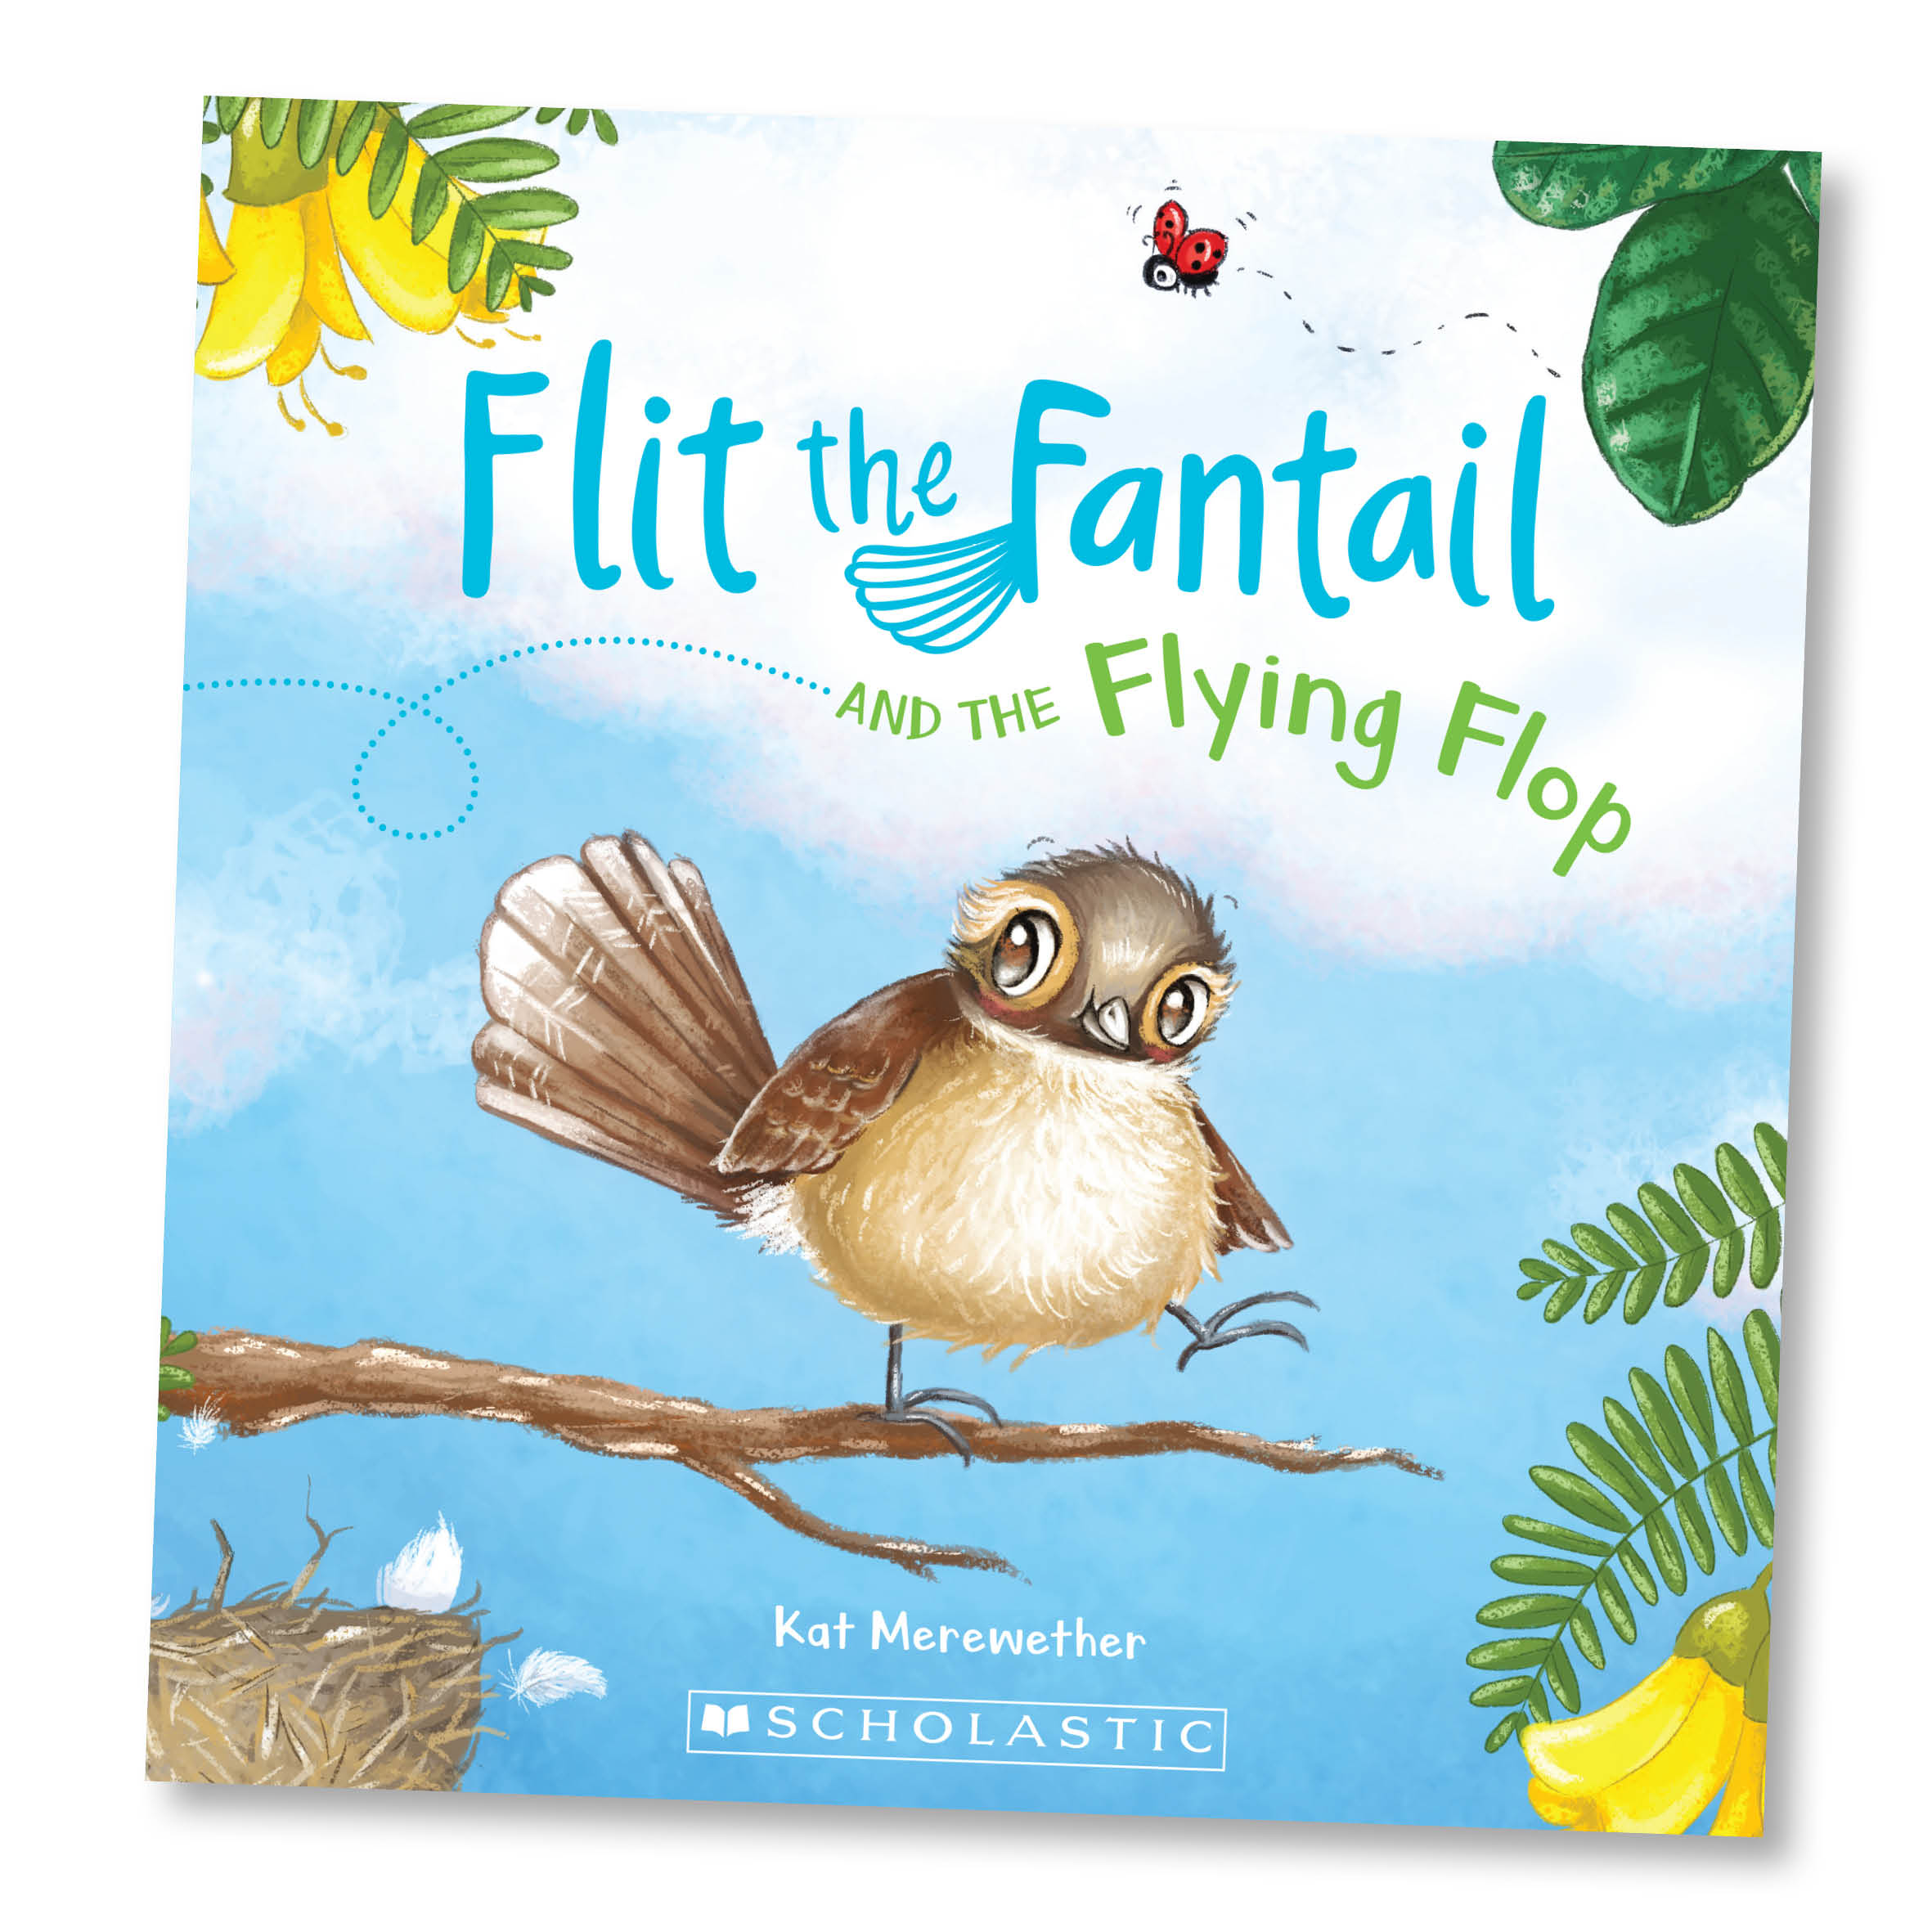 Flit the Fantailand the Flying Flop - Written & Illustrated - Kat MerewetherPublisher - Scholastic NZ